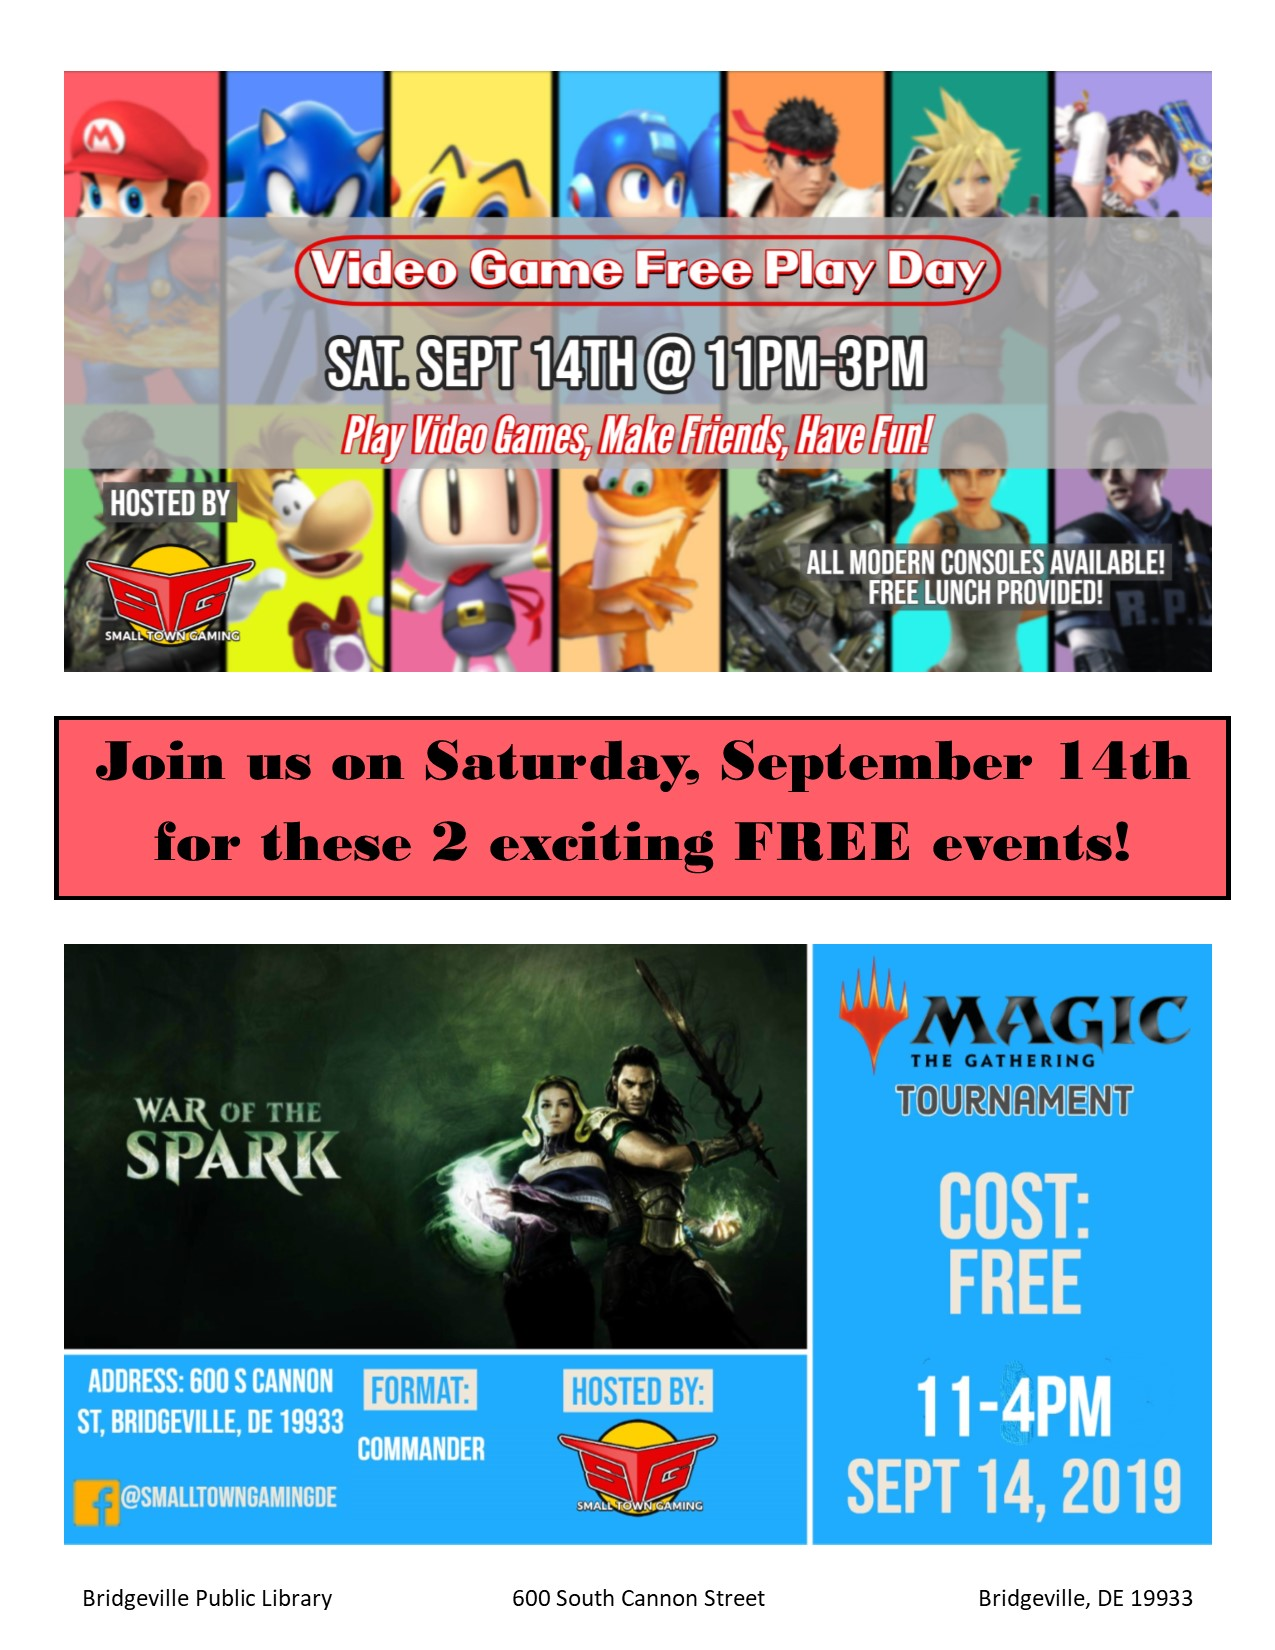 FREE Gaming/Magic Tournament